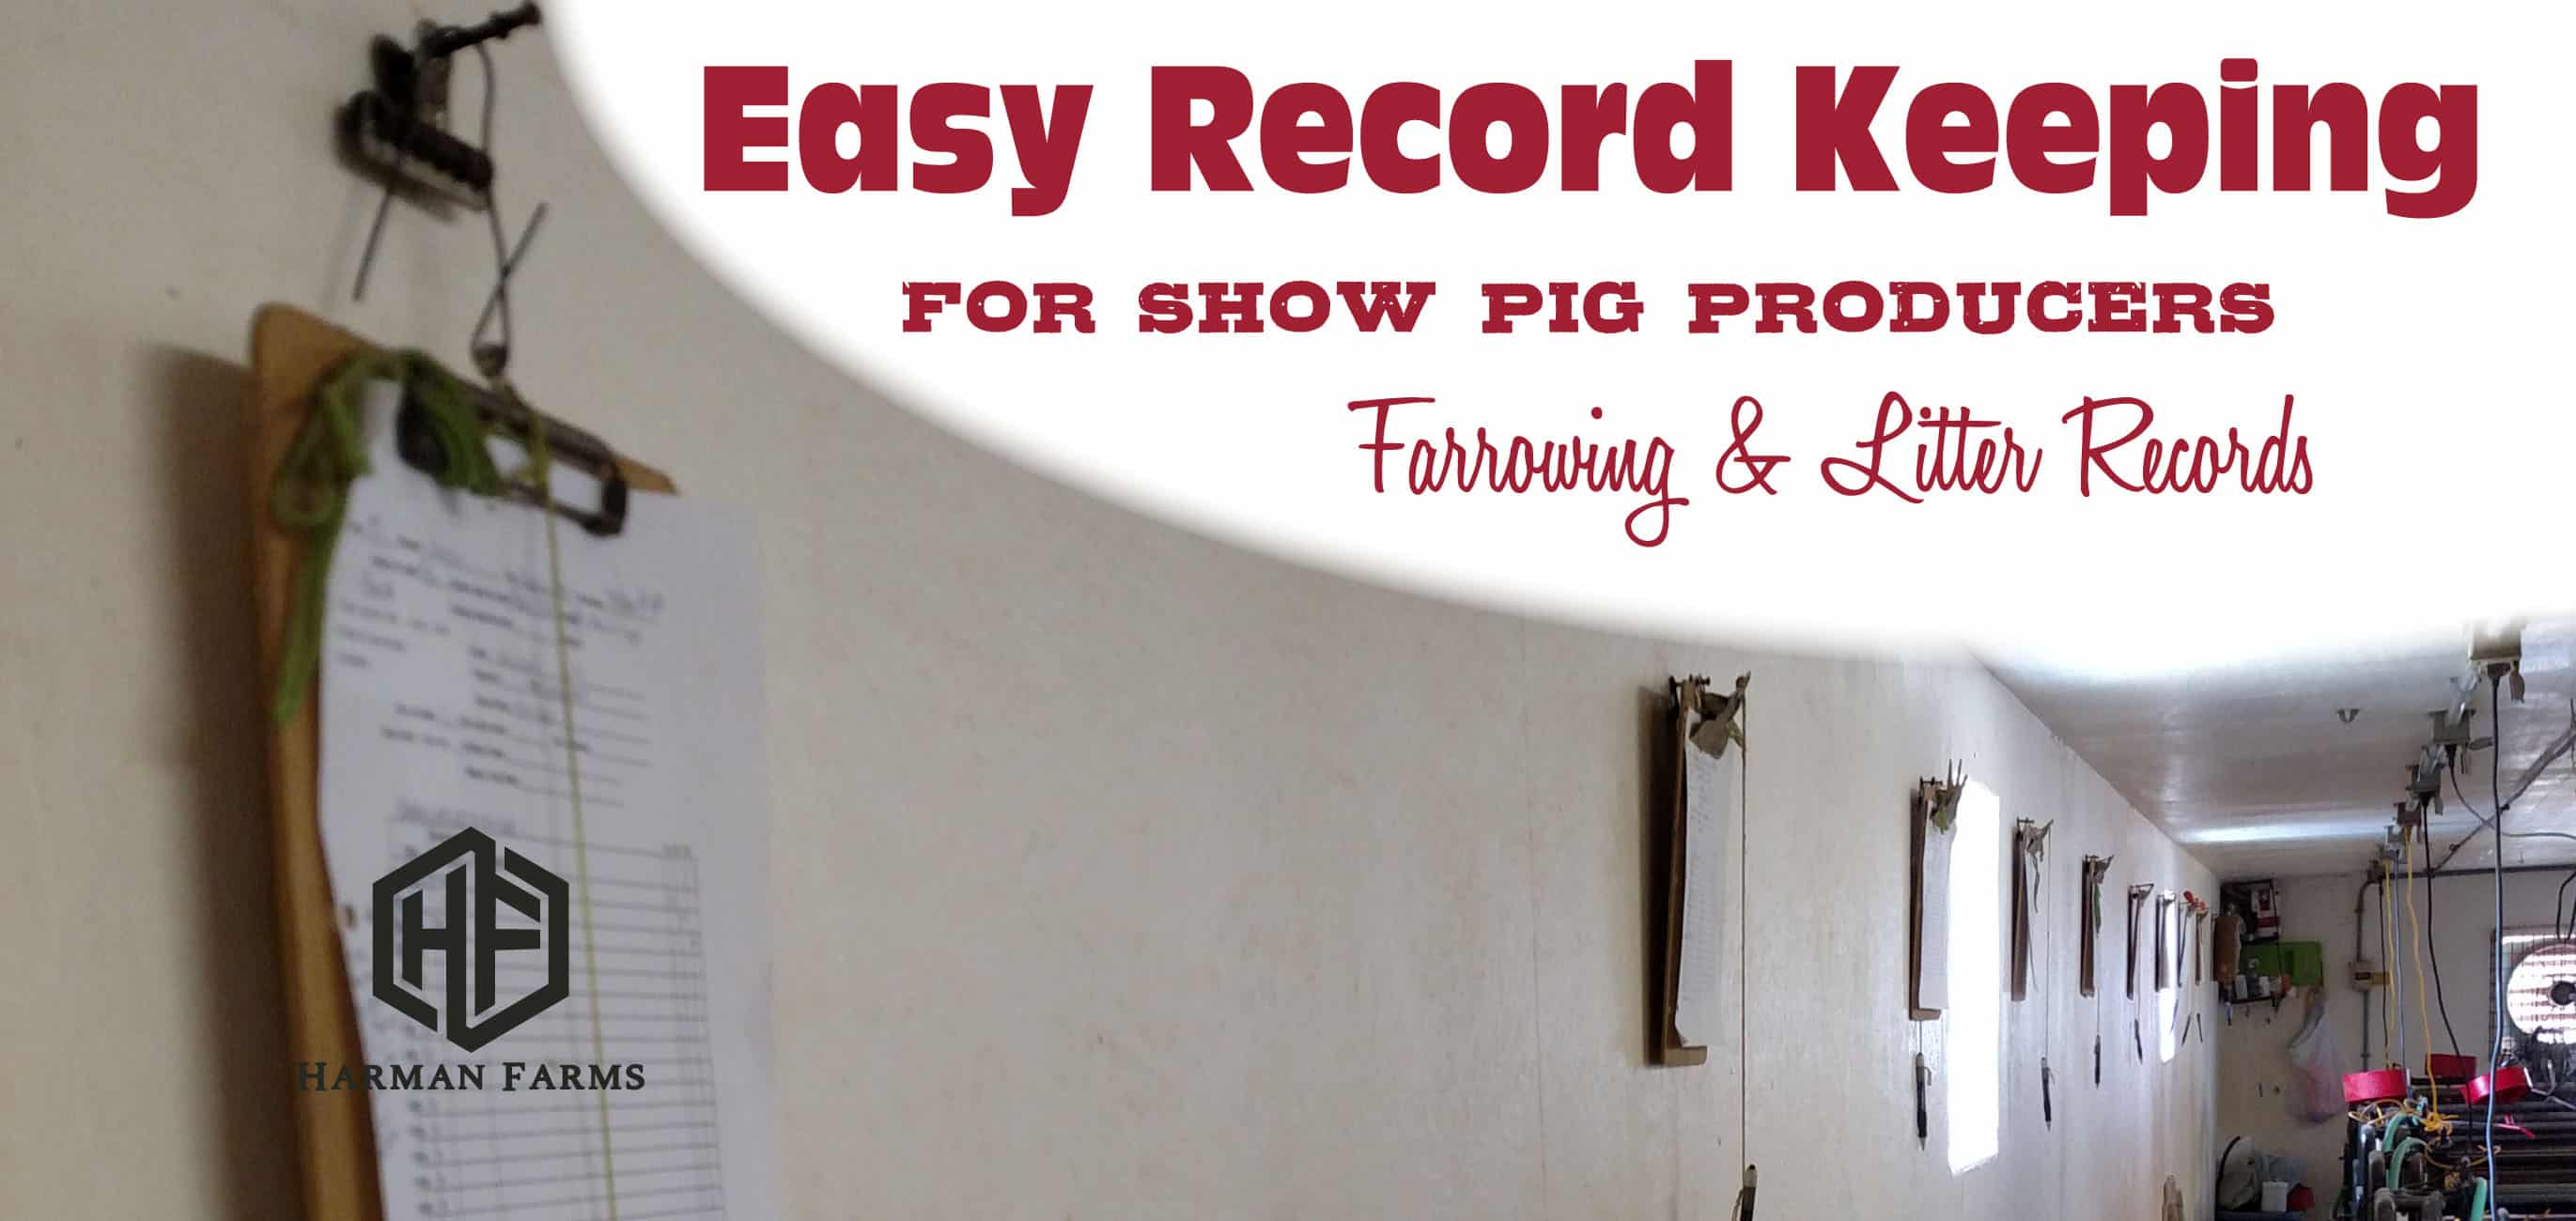 Easy Record Keeping for Showpig Producers